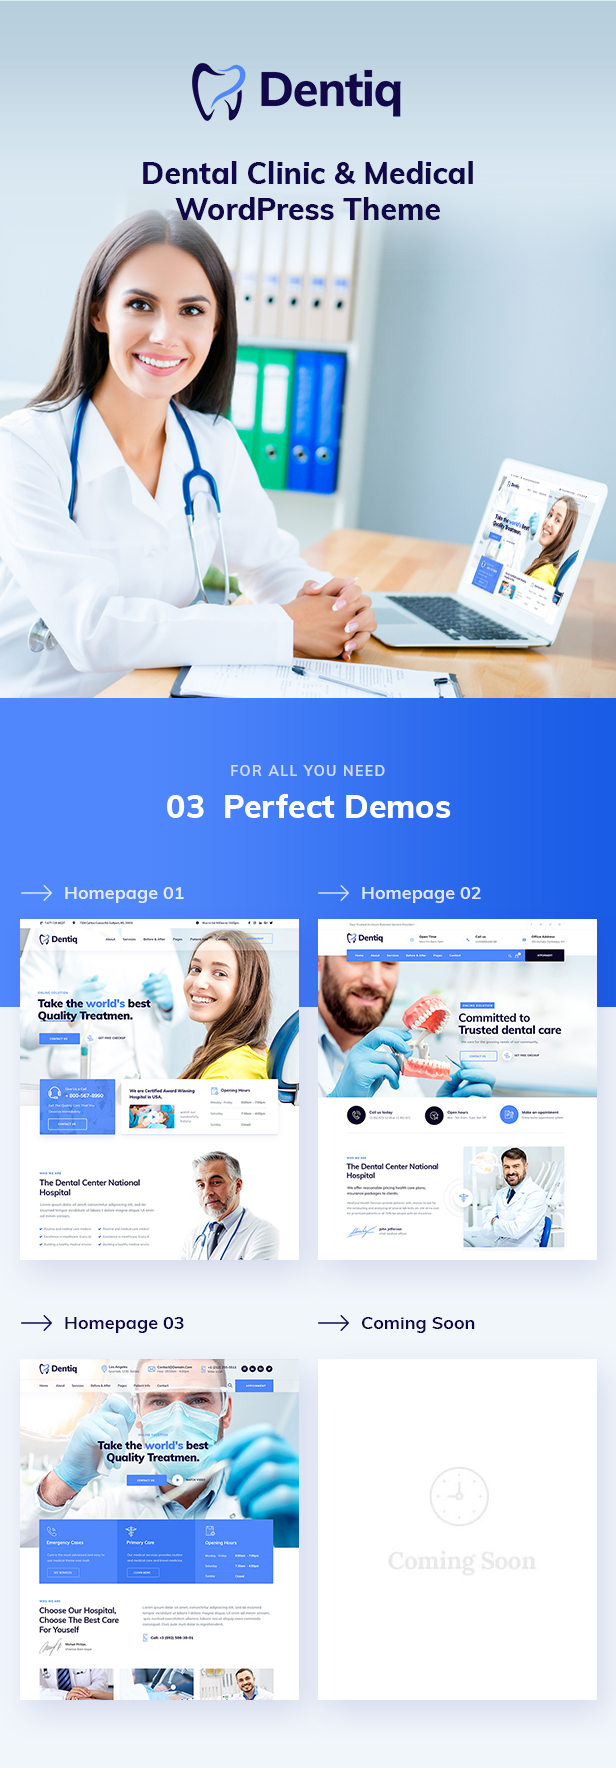 Dentiq WordPress Theme